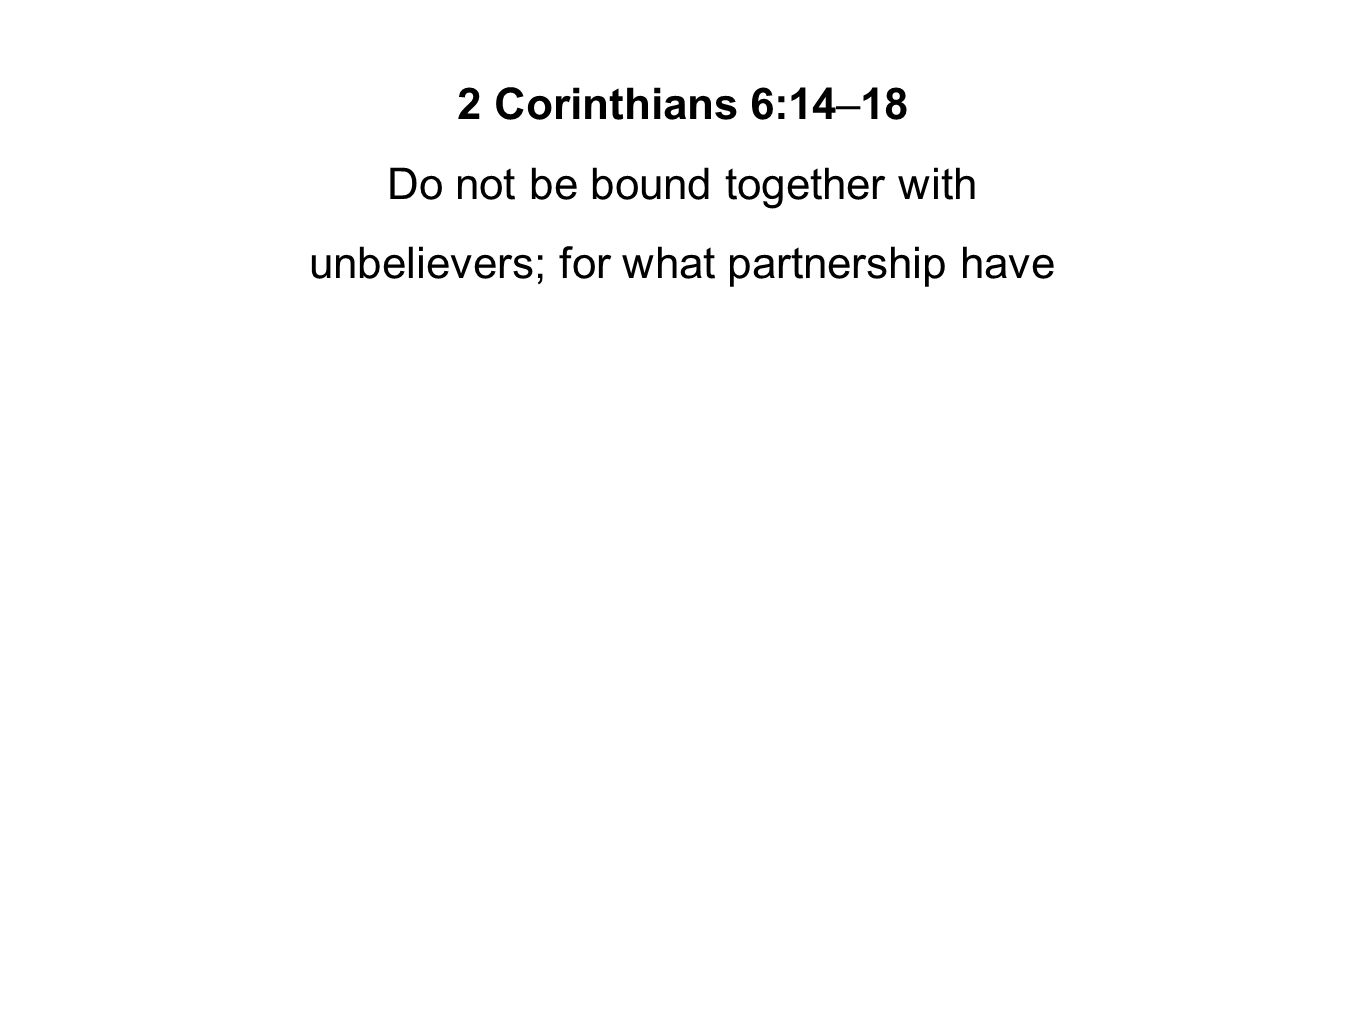 2 Corinthians 6:14–18 Do not be bound together with unbelievers; for what partnership have